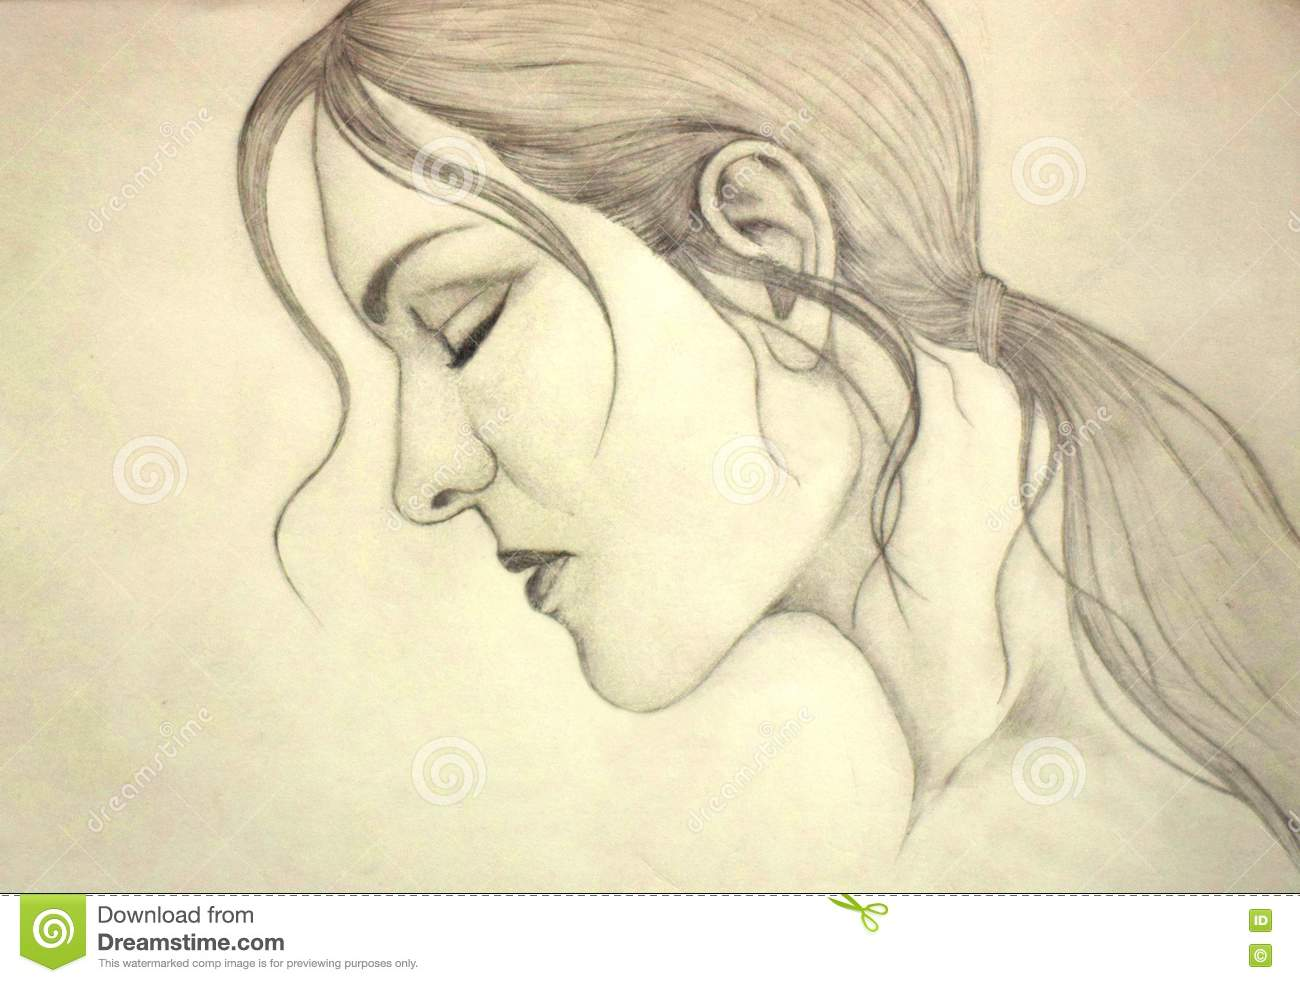 Imaginary lady face sketch drawing stock image image of girl